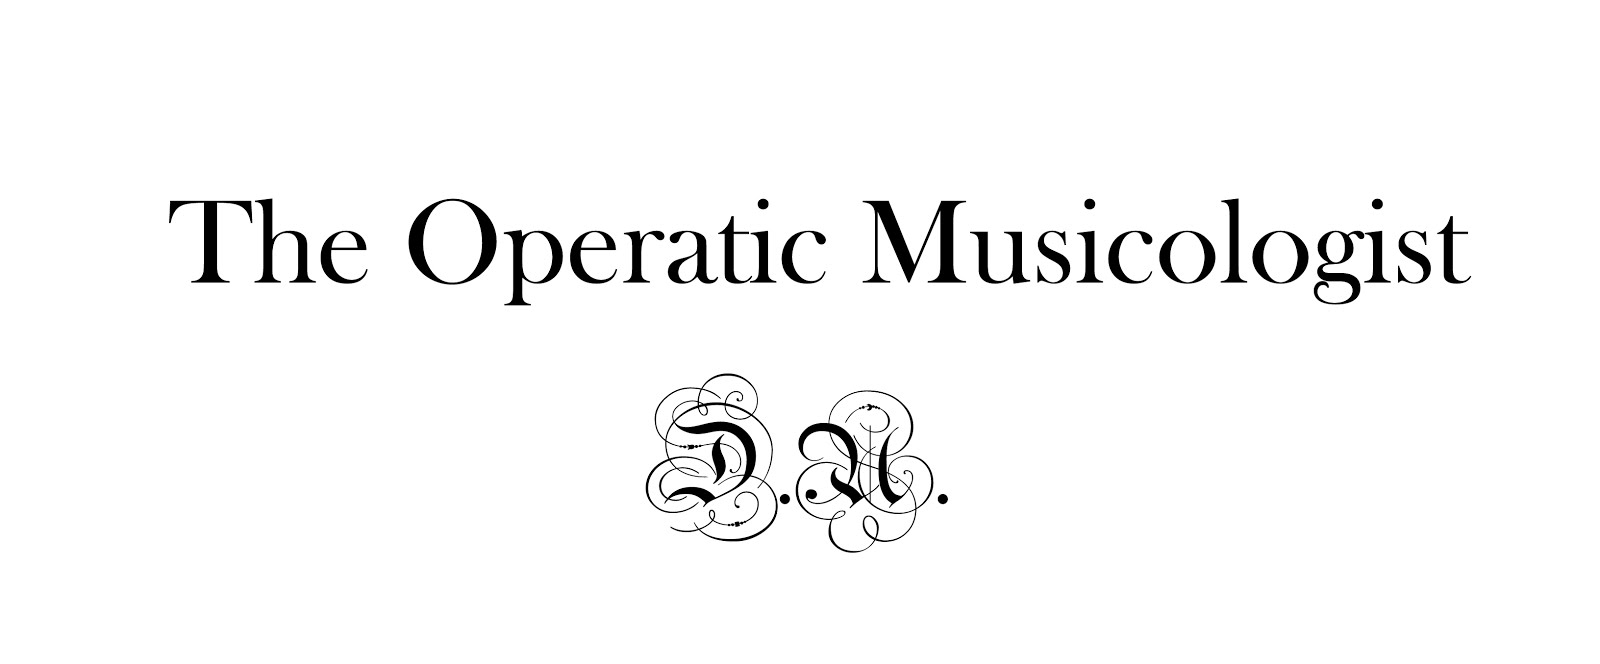 The Operatic Musicologist on Facebook